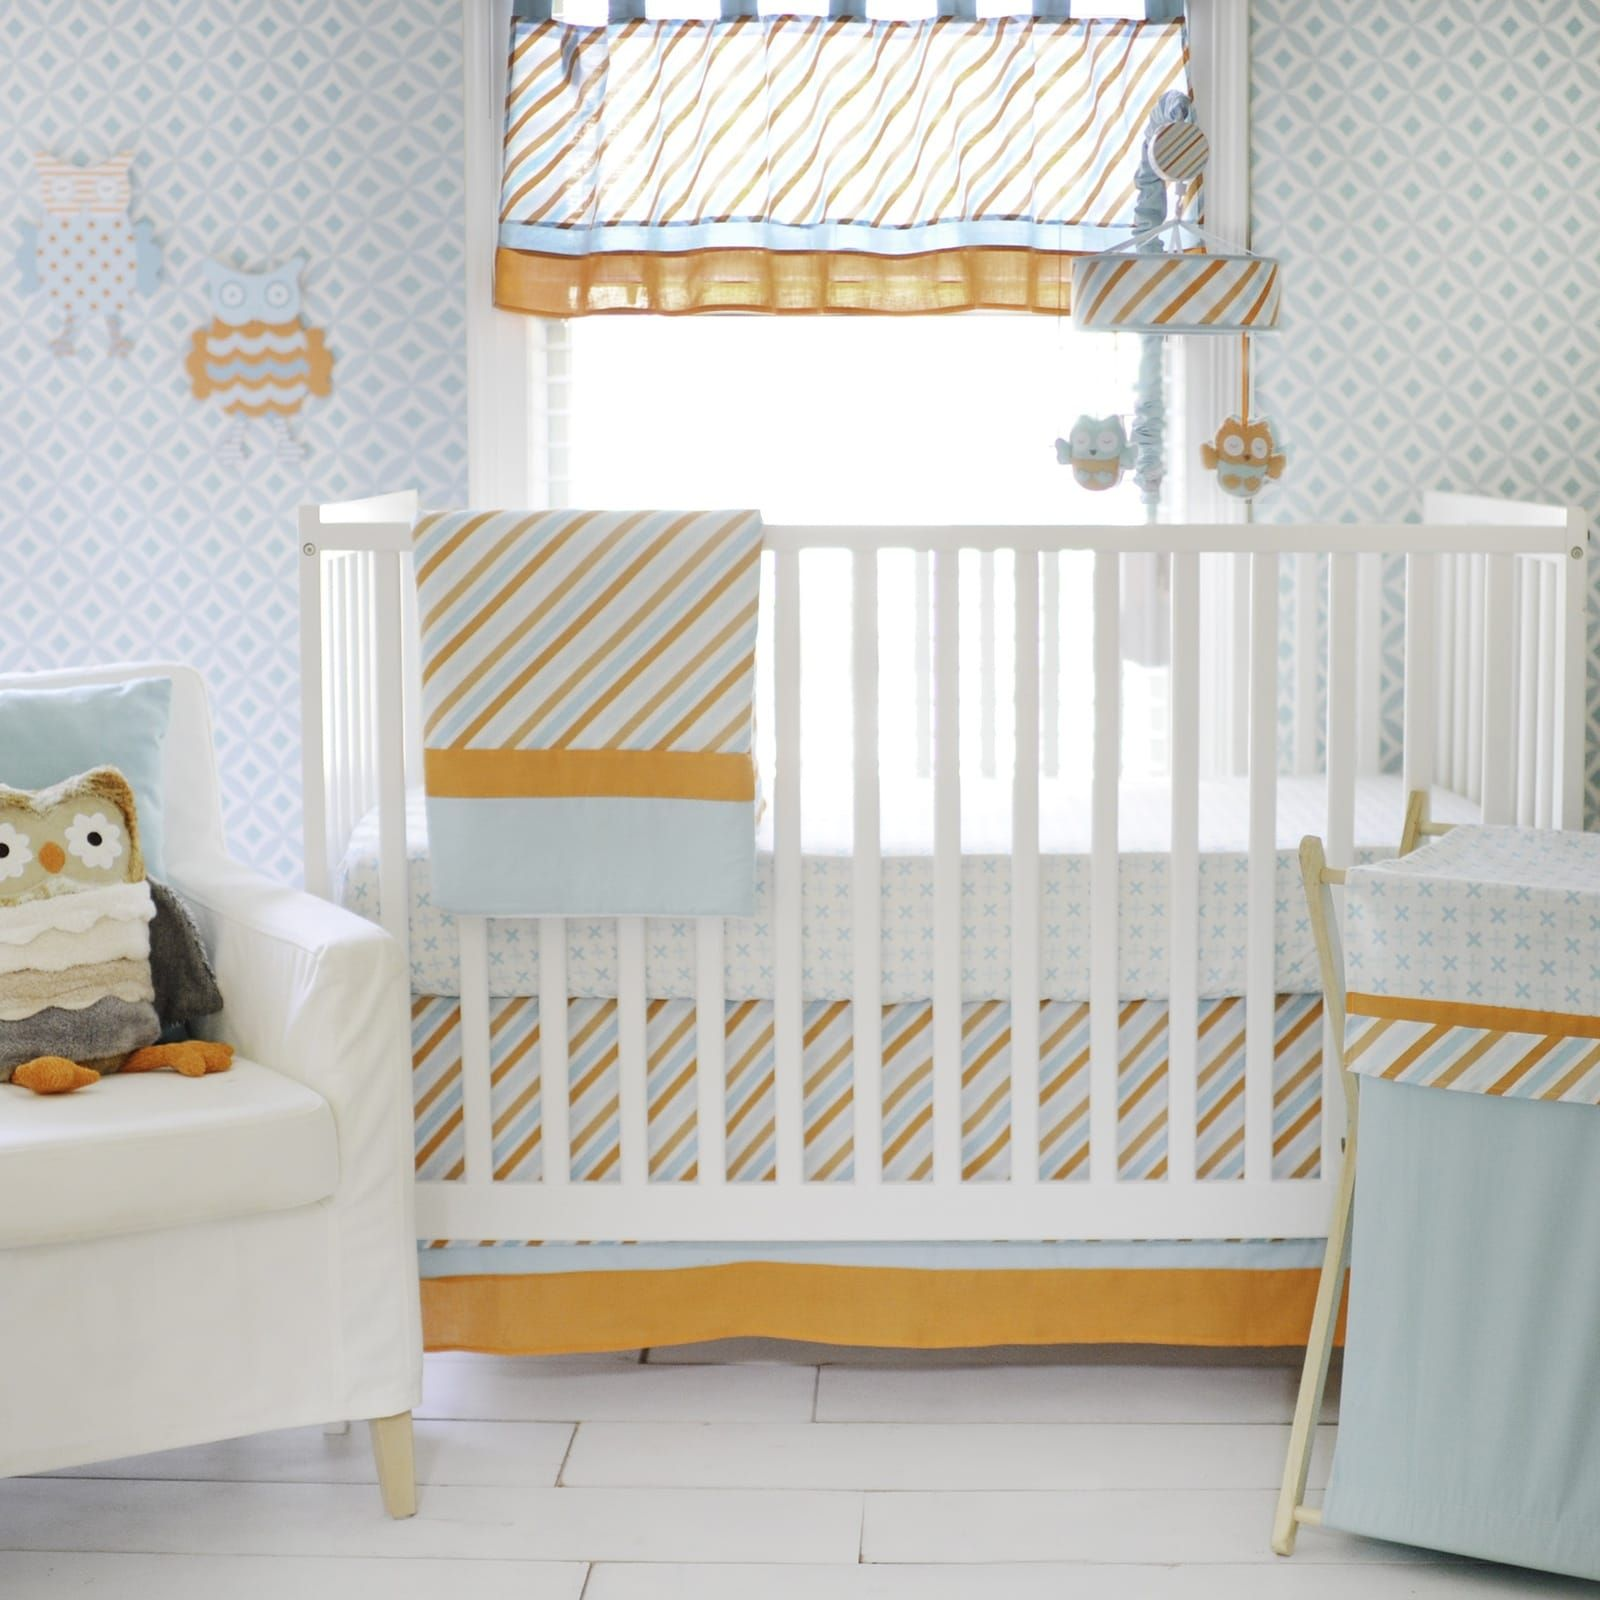 Penny Lane Baby Crib Bedding available at TinyTotties.com  Still my favorite, not too much on the owl .